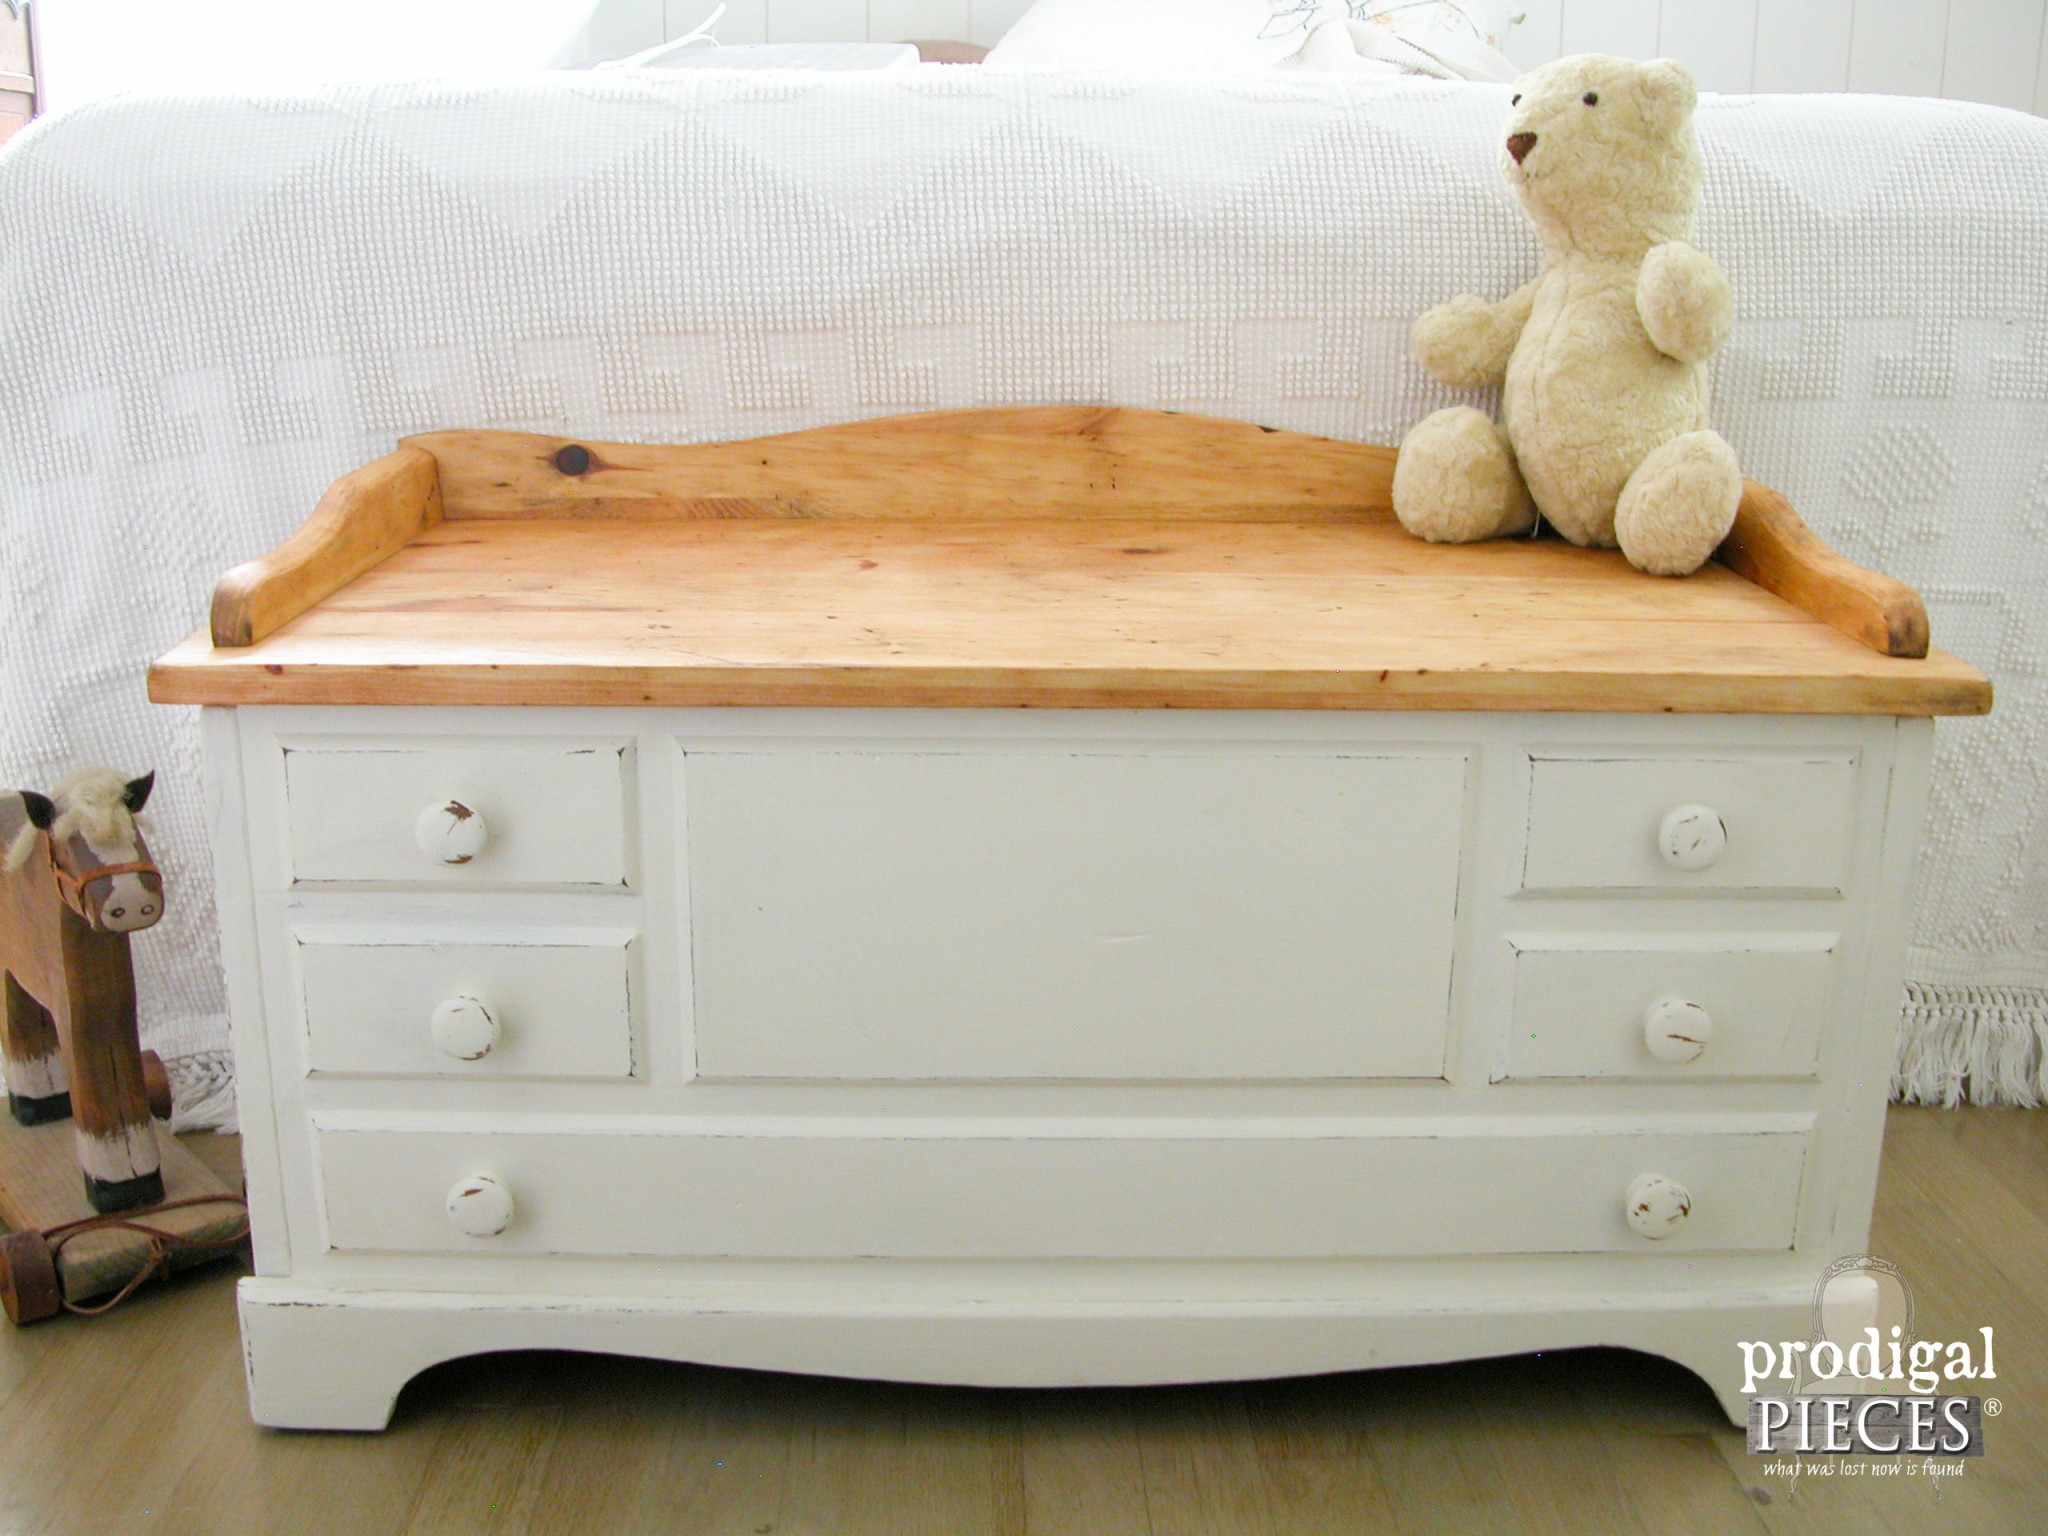 Rustic Child's Wooden Chest by Prodigal Pieces | www.prodigalpieces.com